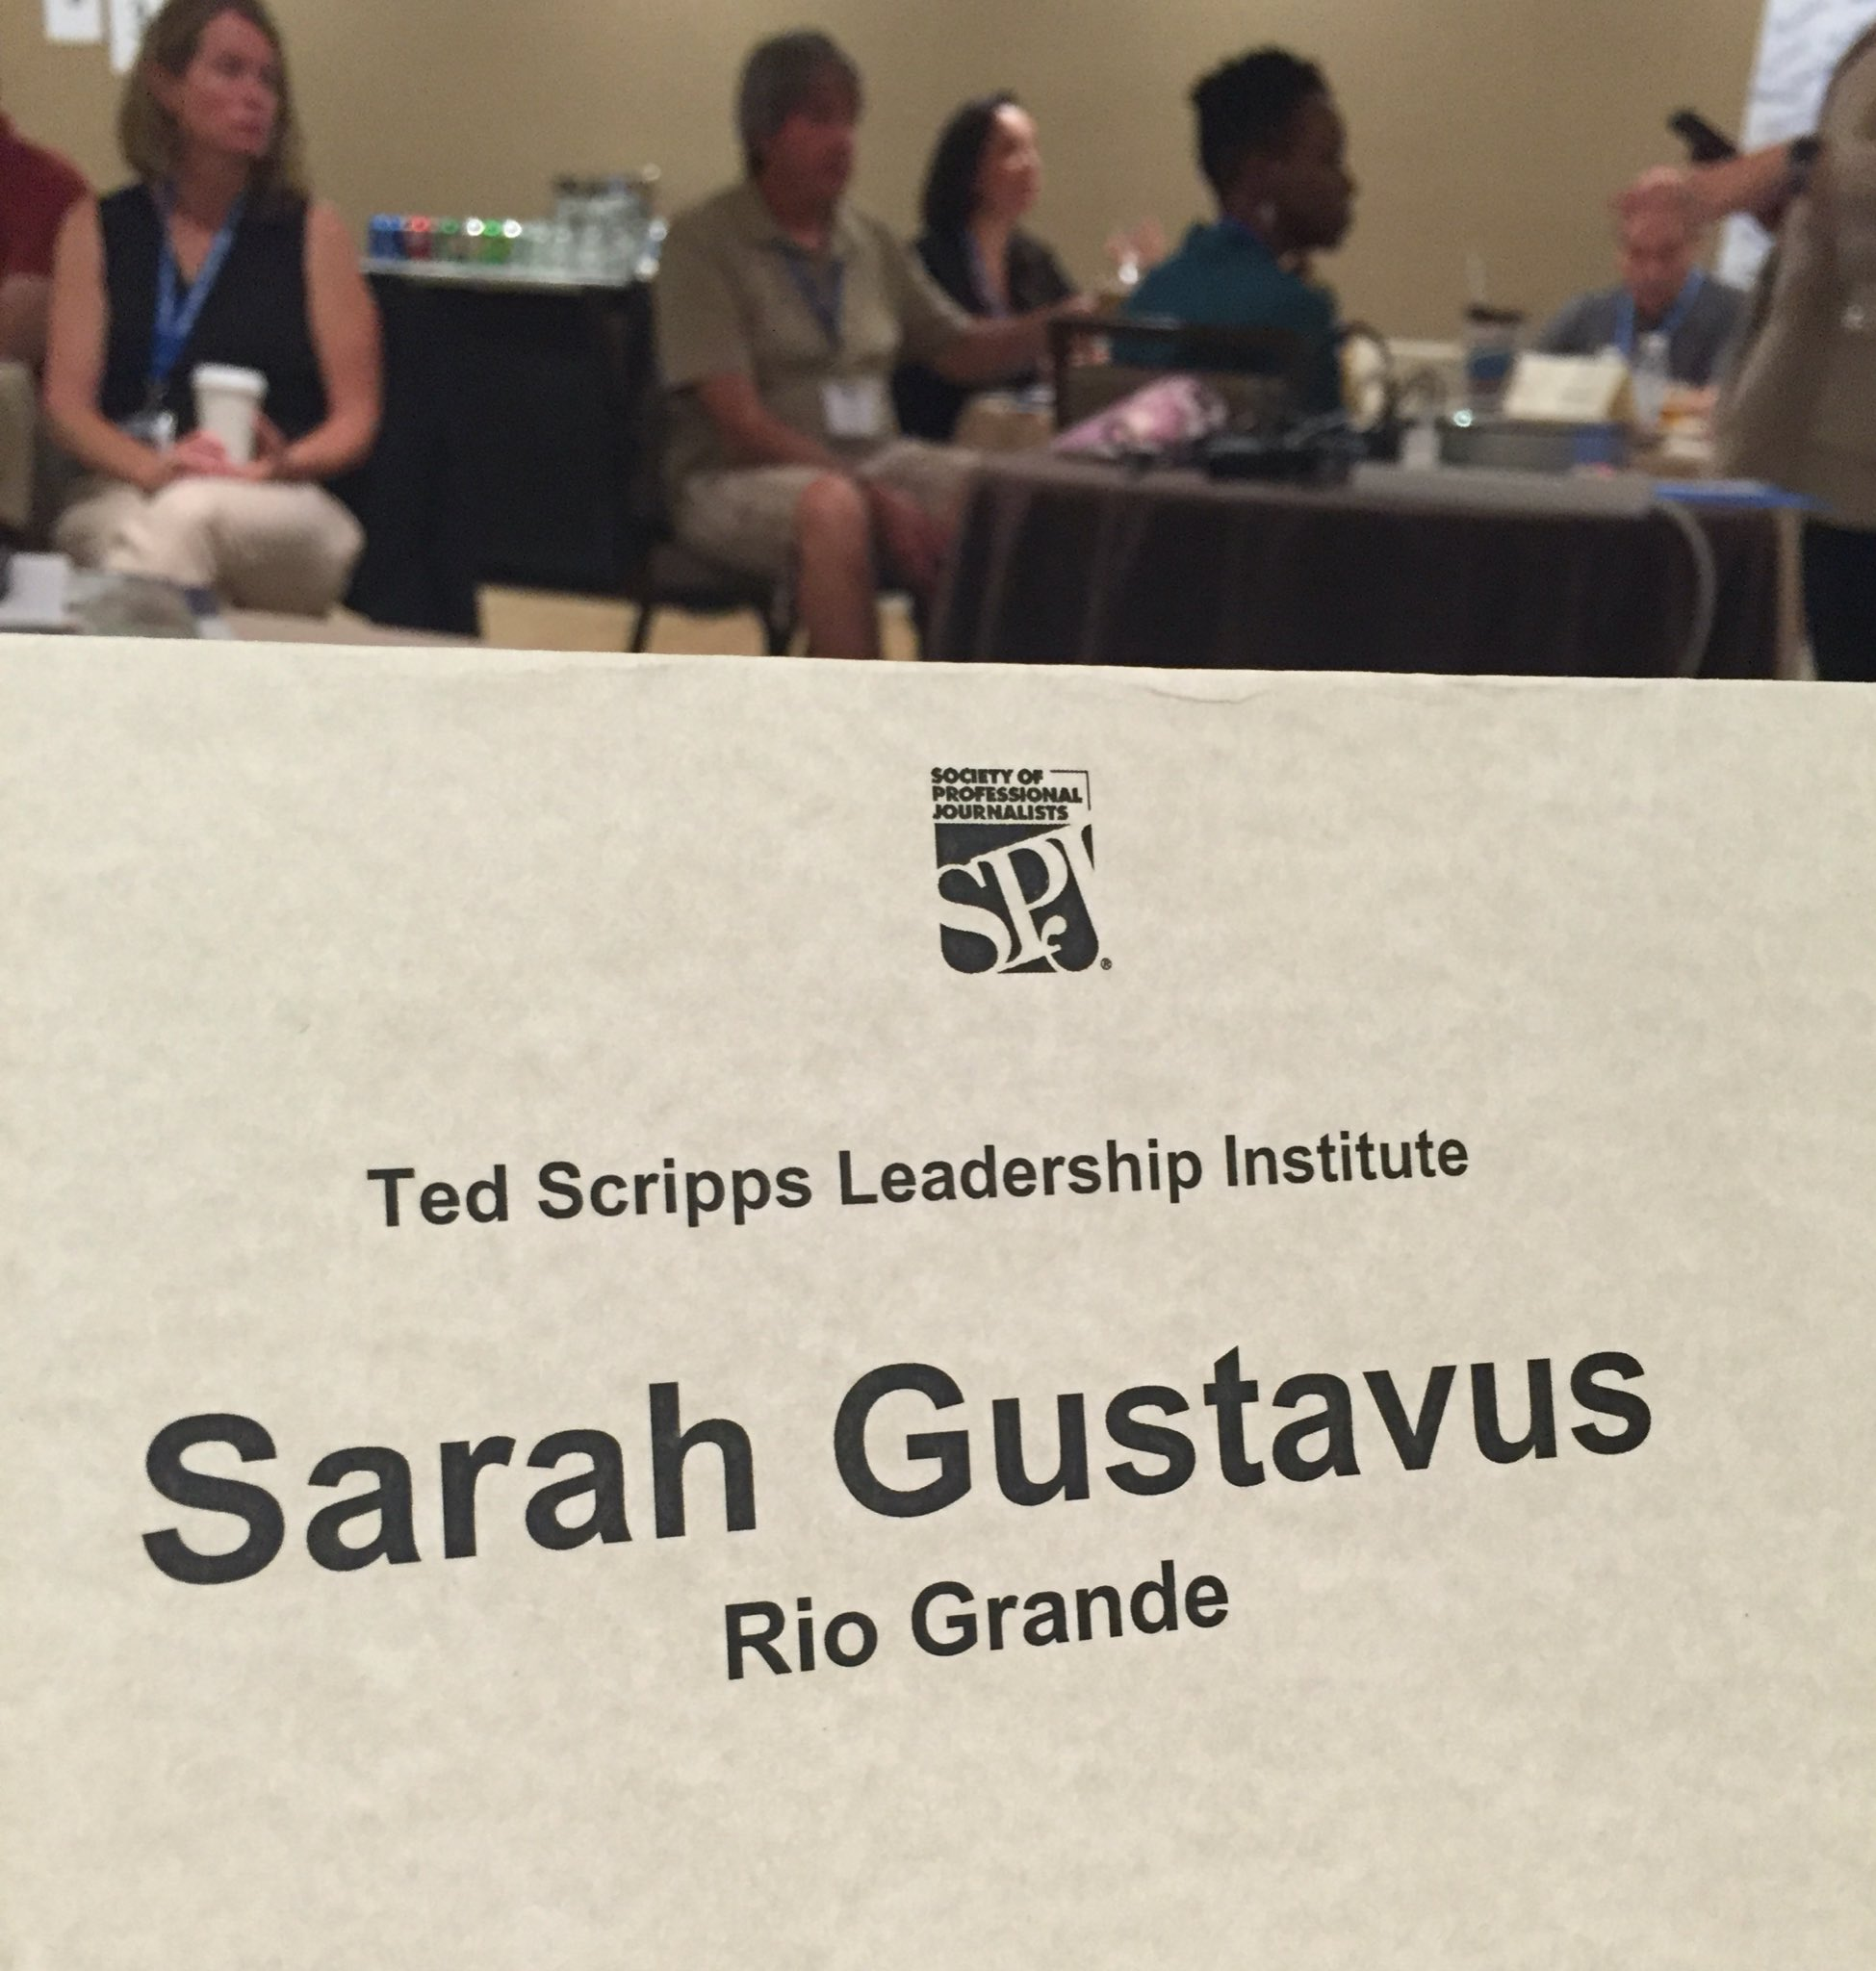 I'm a nerd for professional development. Glad to be at the Ted Scripps Leadership Institute today! #SPJScripps https://t.co/FLKzTWUIqO